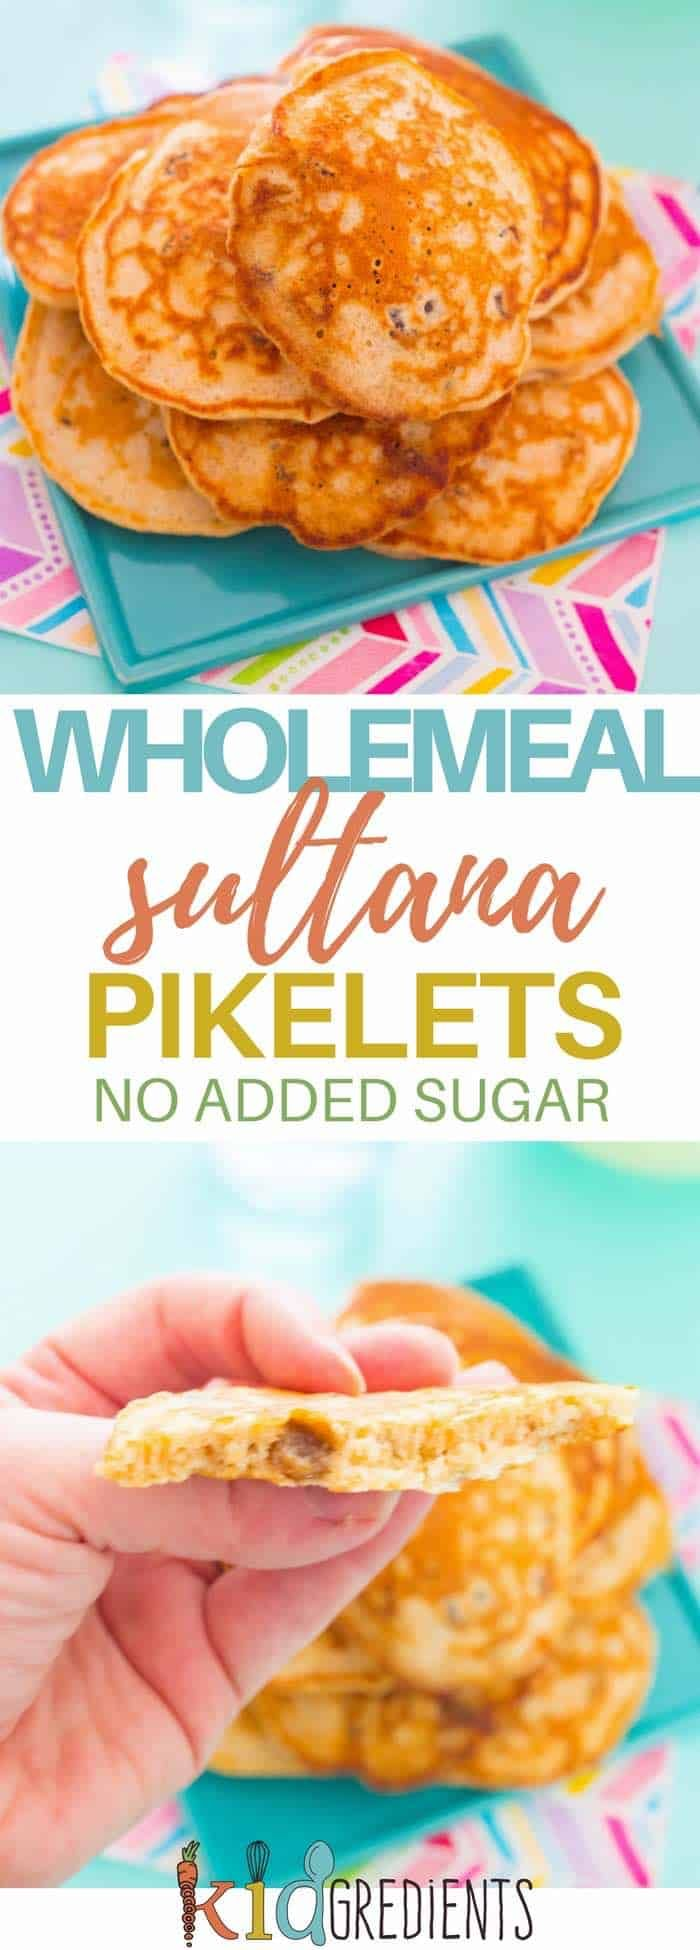 Wholemeal sultana pikelets, no added sugar, perfect for a snack, lunchbox or breakfast. Delicious recipe with the goodness of wholemeal flour and no added sugar! #kidsfood #pancakes #pikelets #healthykids #recipe #breakfast #snacks #nobake